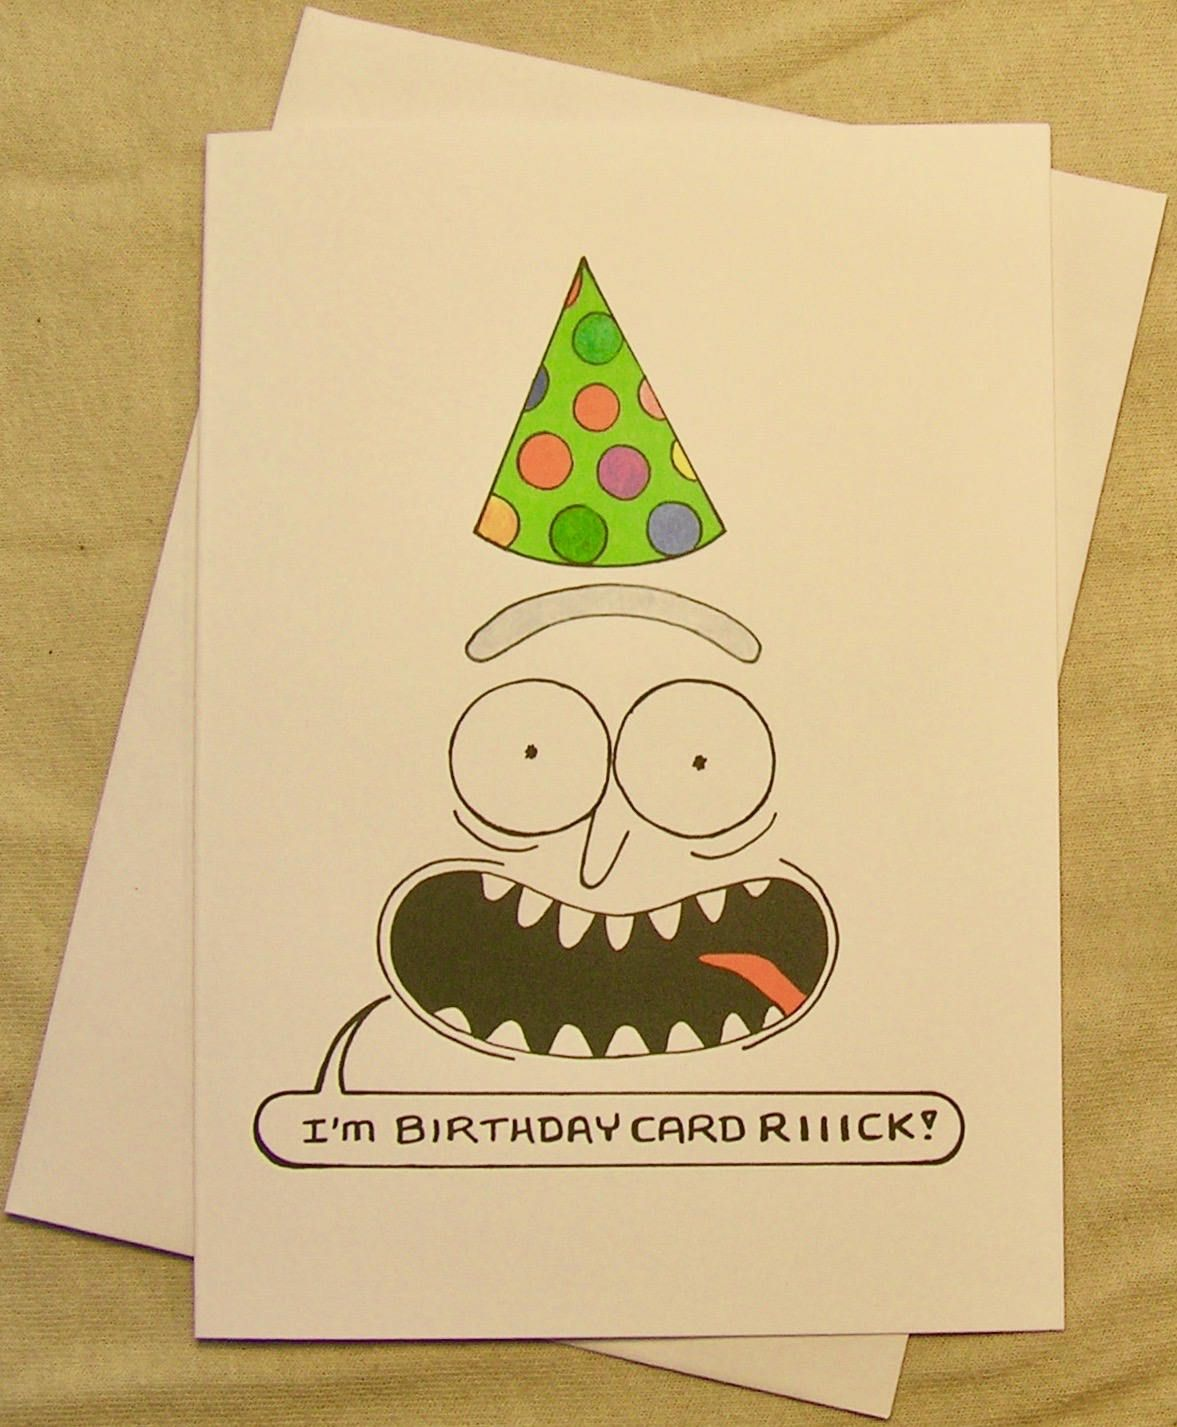 Rick And Morty Birthday Card Birthday Card Rick Regular Size Card And Mini Version A Lunar Eclipse Cartoon Birthday Card Cards Birthday Cards Rick And Morty